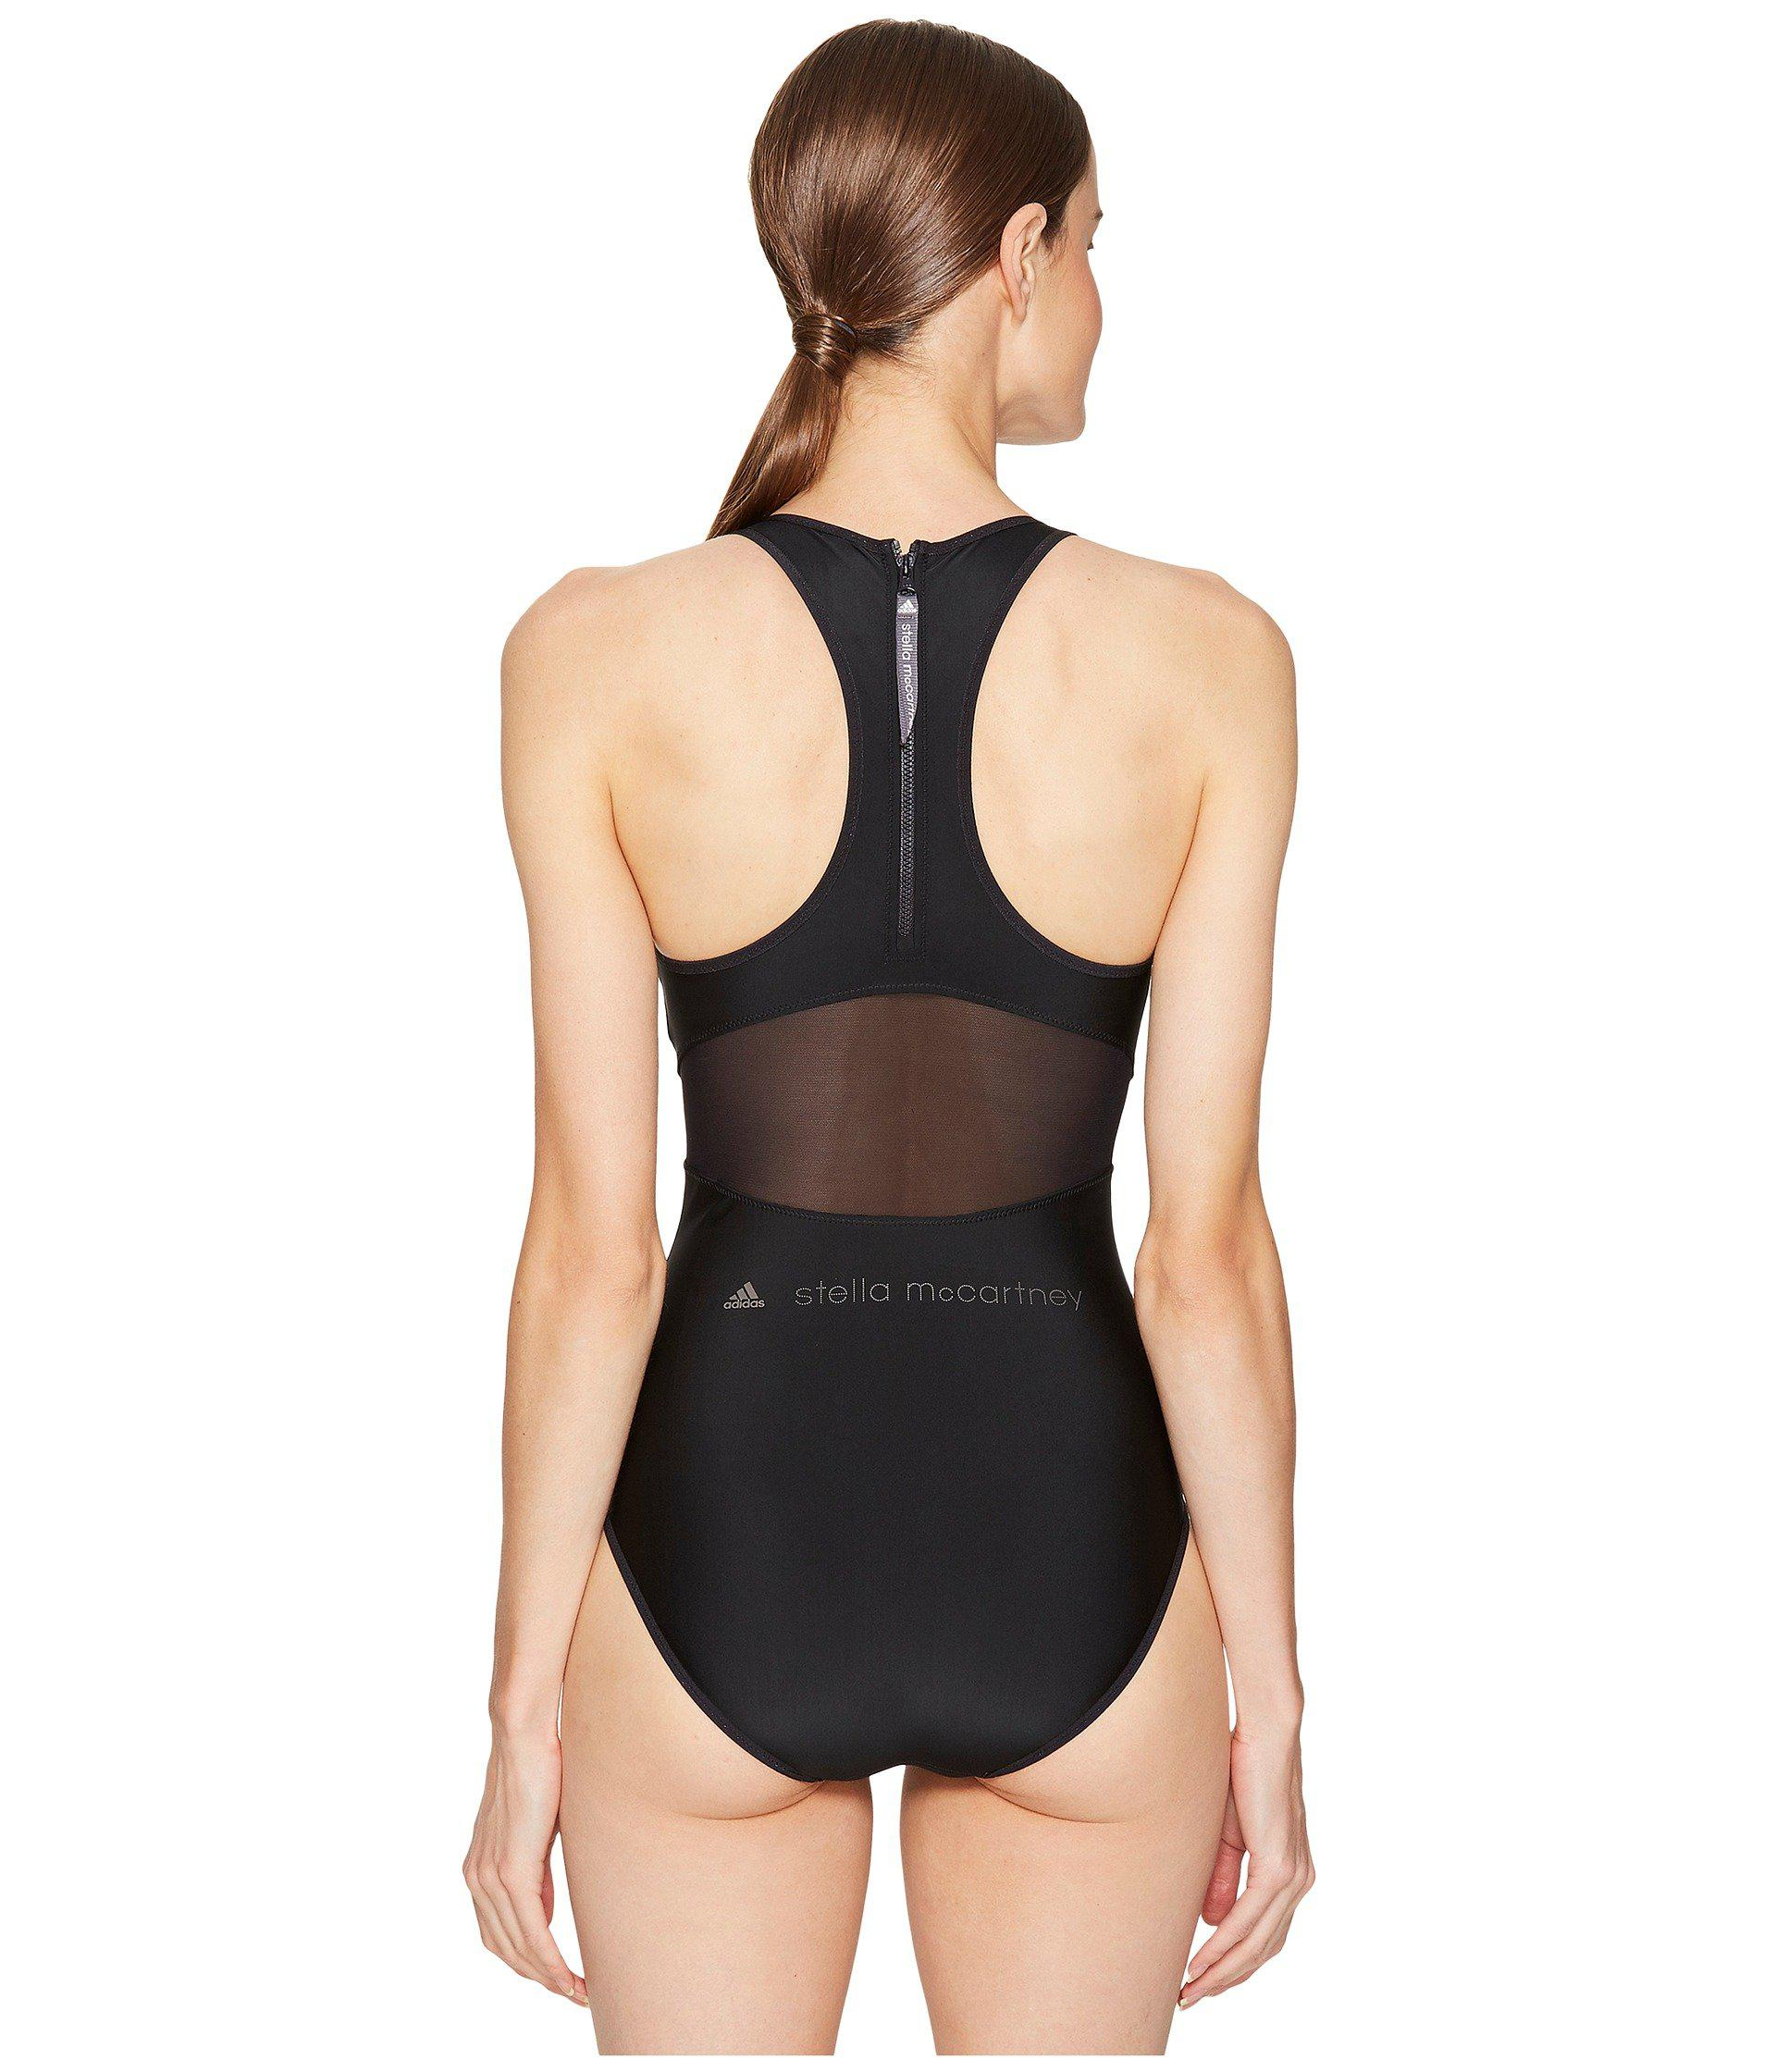 fbeb1c3755a6e adidas By Stella McCartney Performance Zip Swimsuit Bs1150 in Black ...